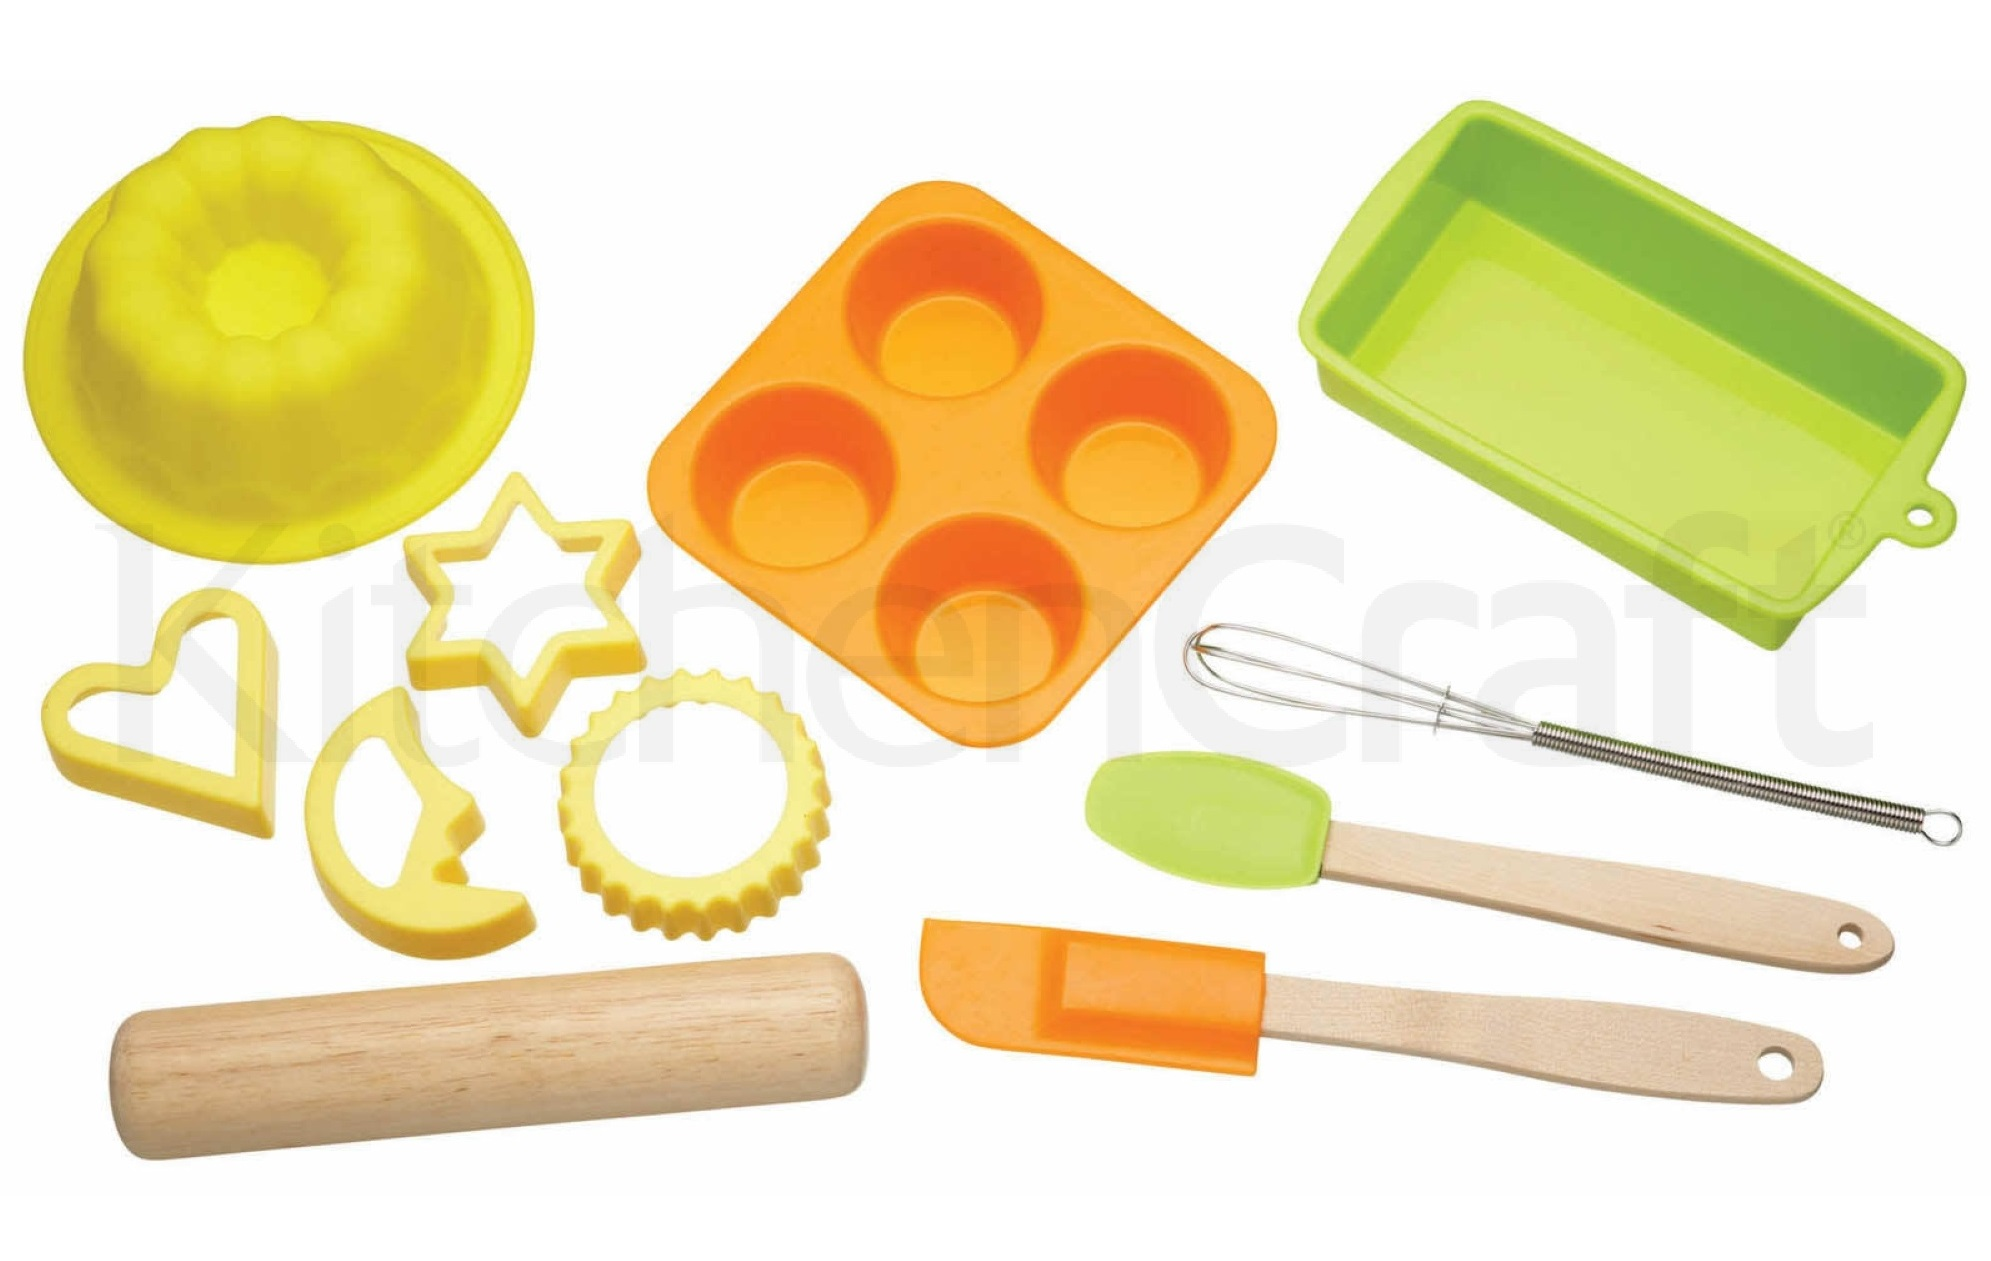 6 Cooking Utensils